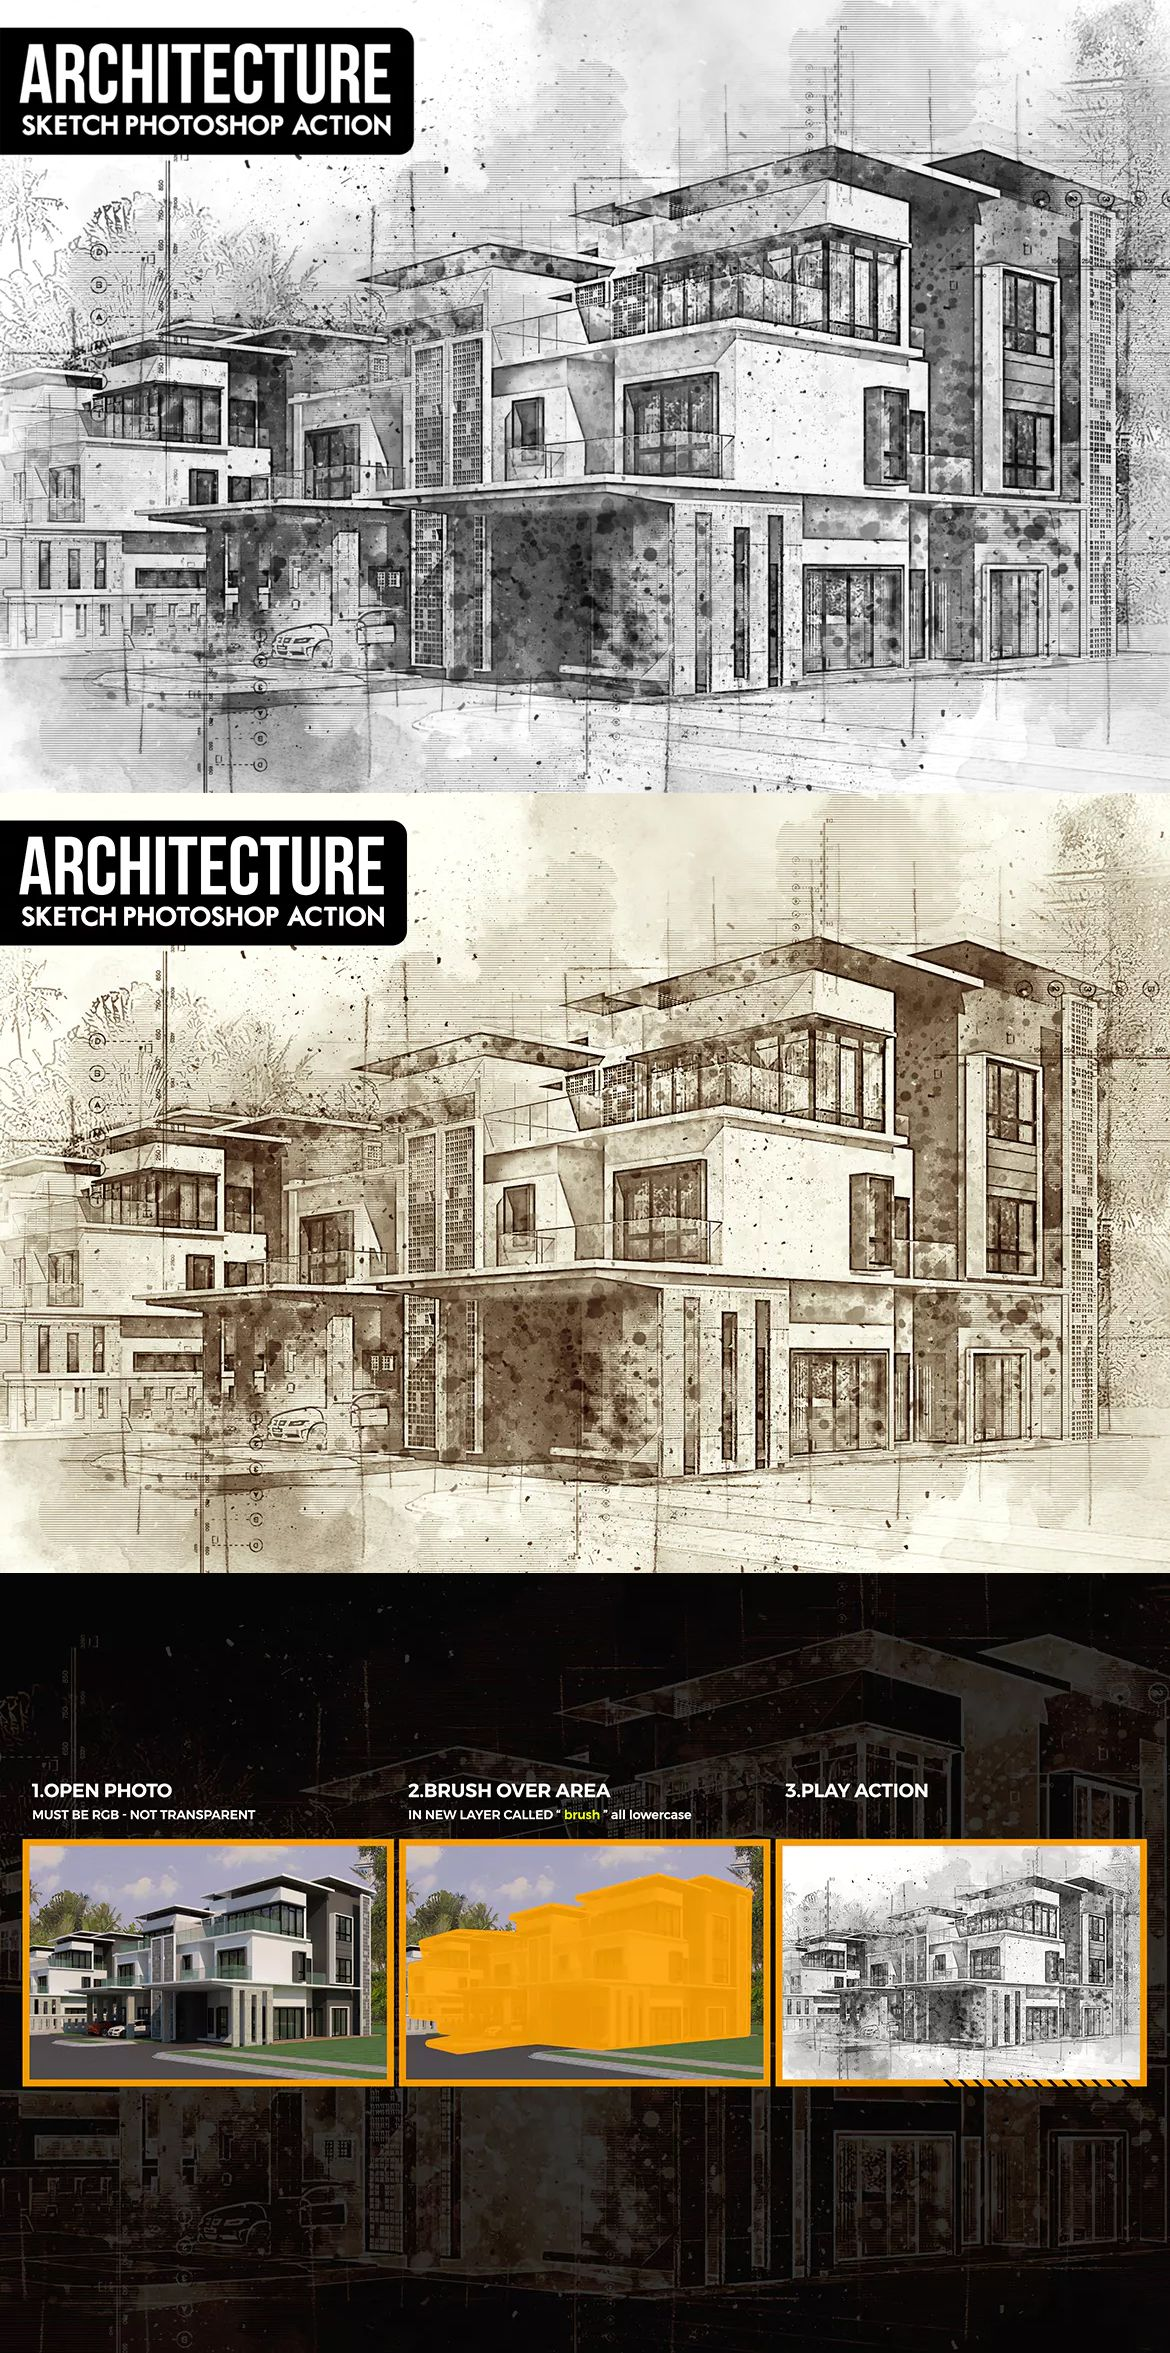 Architecture Sketch Photoshop Action By Ihemalaya On With Images